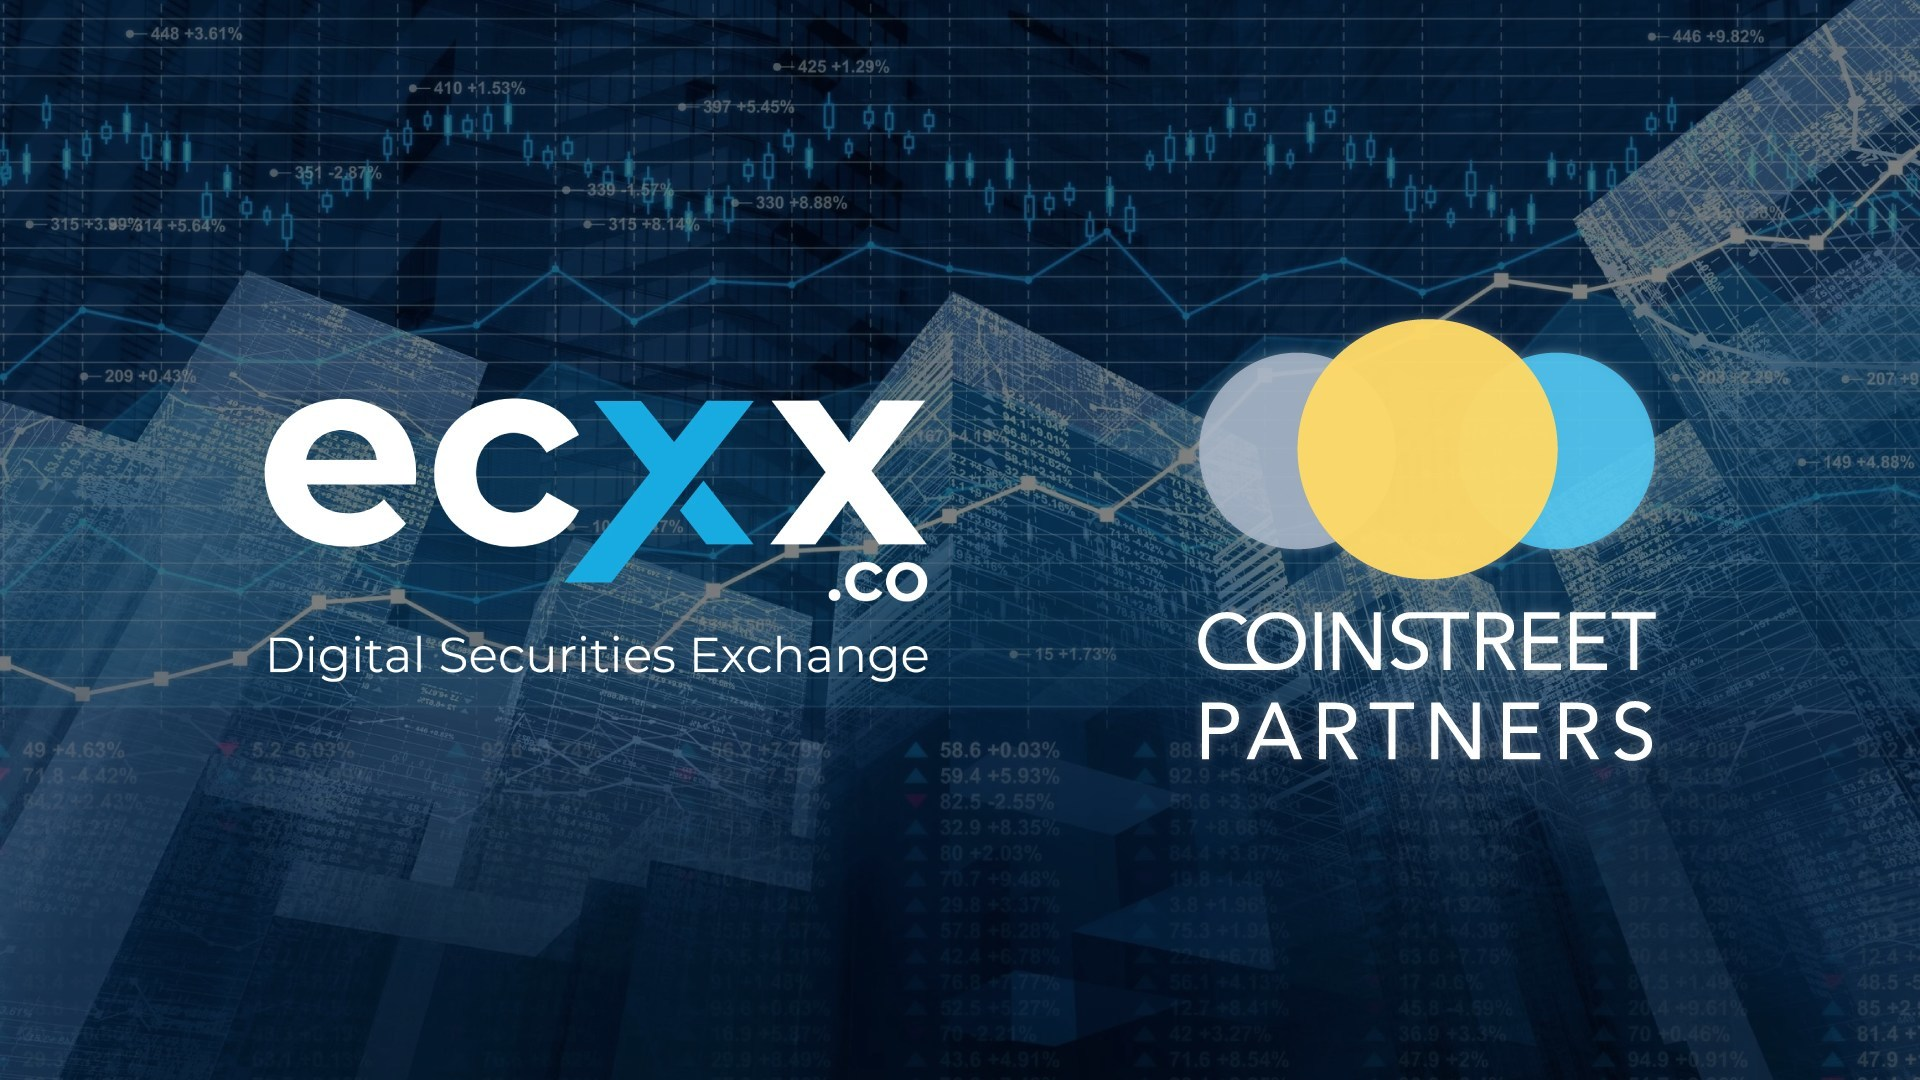 Constreet Partners and ECXX announce strategic partnership in asset tokenization, digitized securities and STO areas